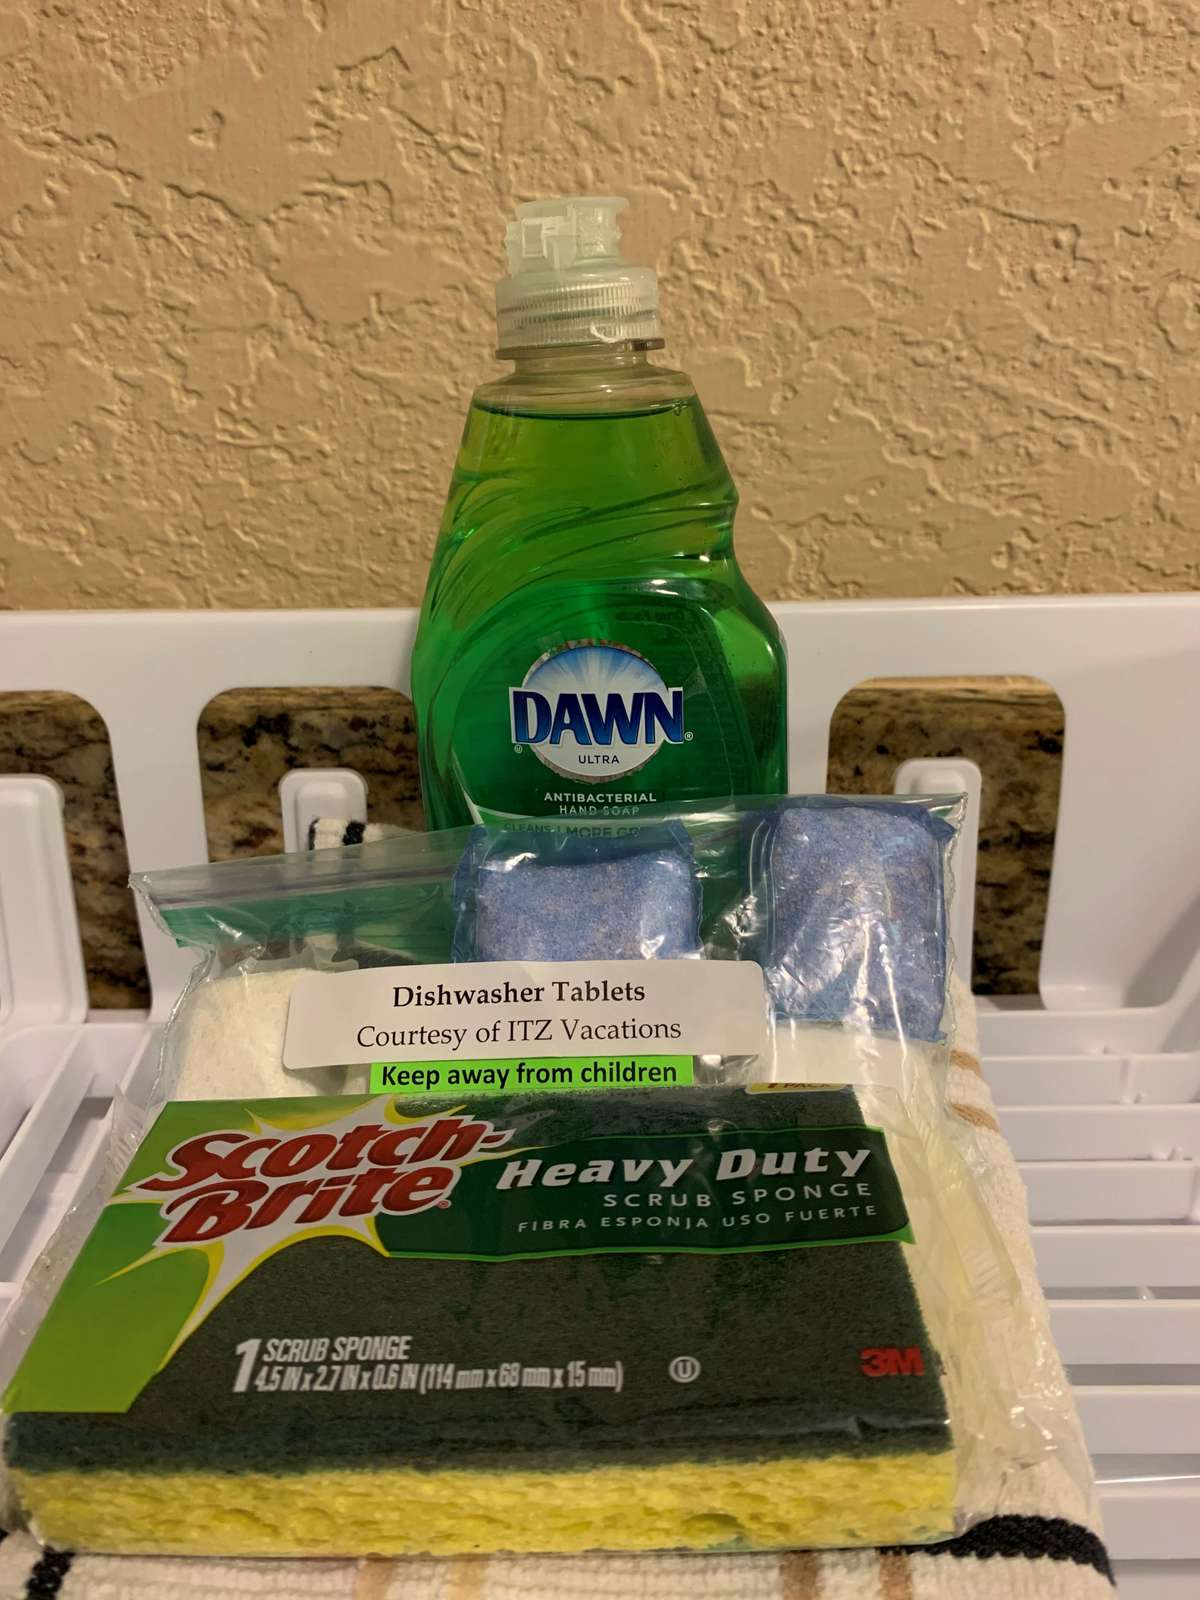 Dish washing starter kit